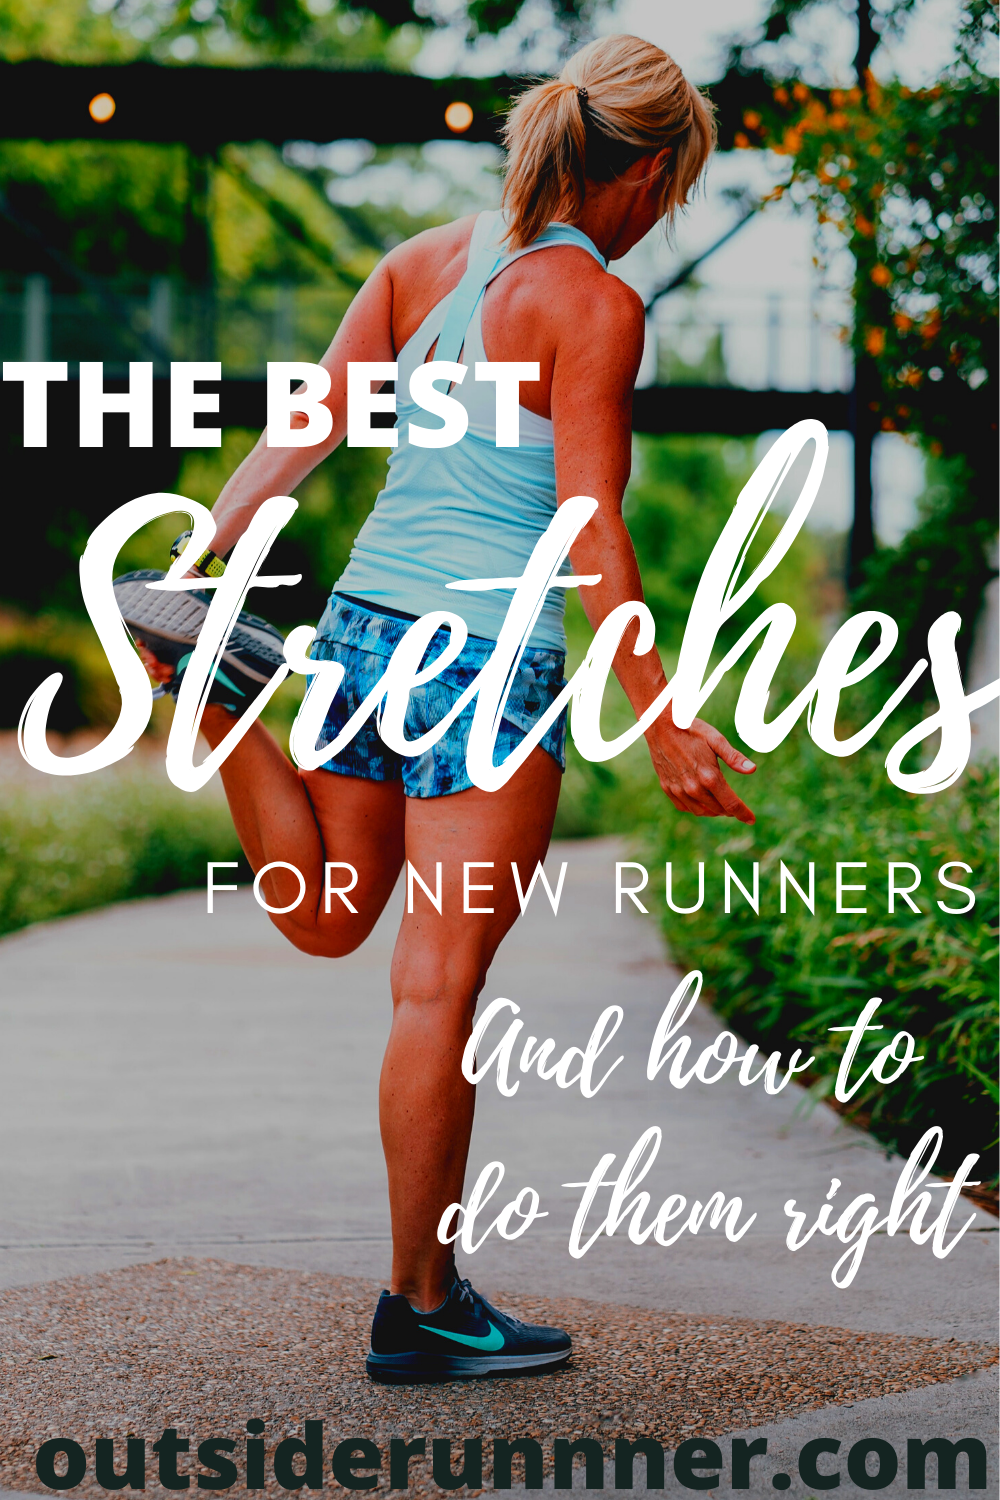 Post Workout Stretches for Runners - My Top 9 Stretches - Outside Runner